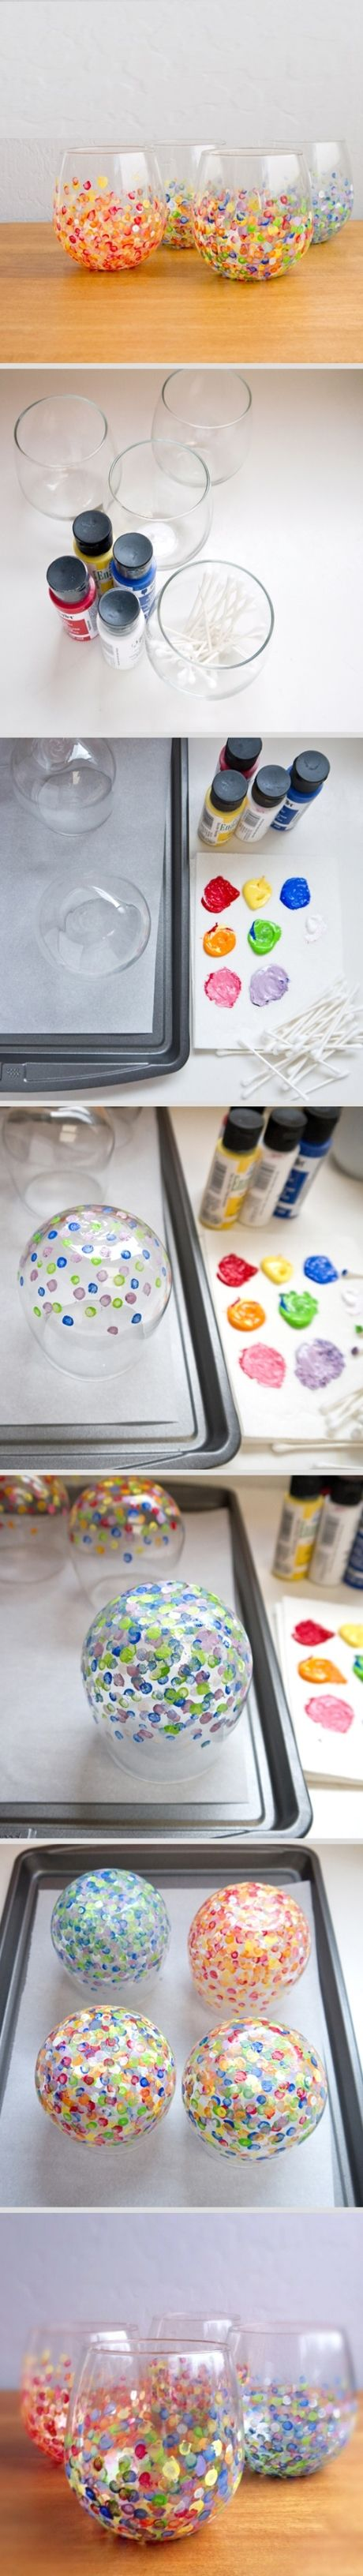 15 crafts to keep you busy!